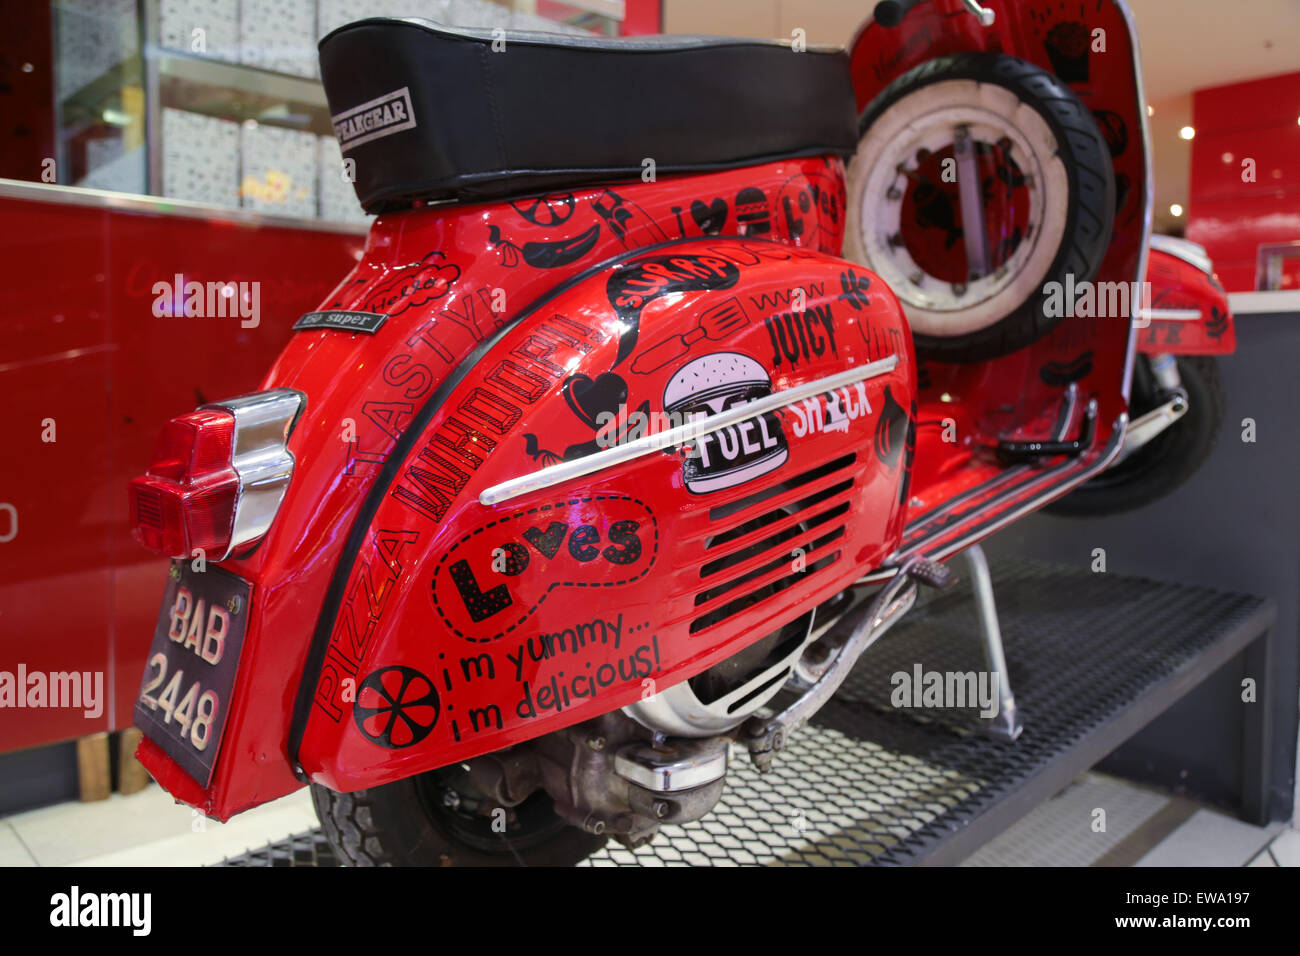 A classic piaggio vespa painted red with appertising words for Vespa decoration